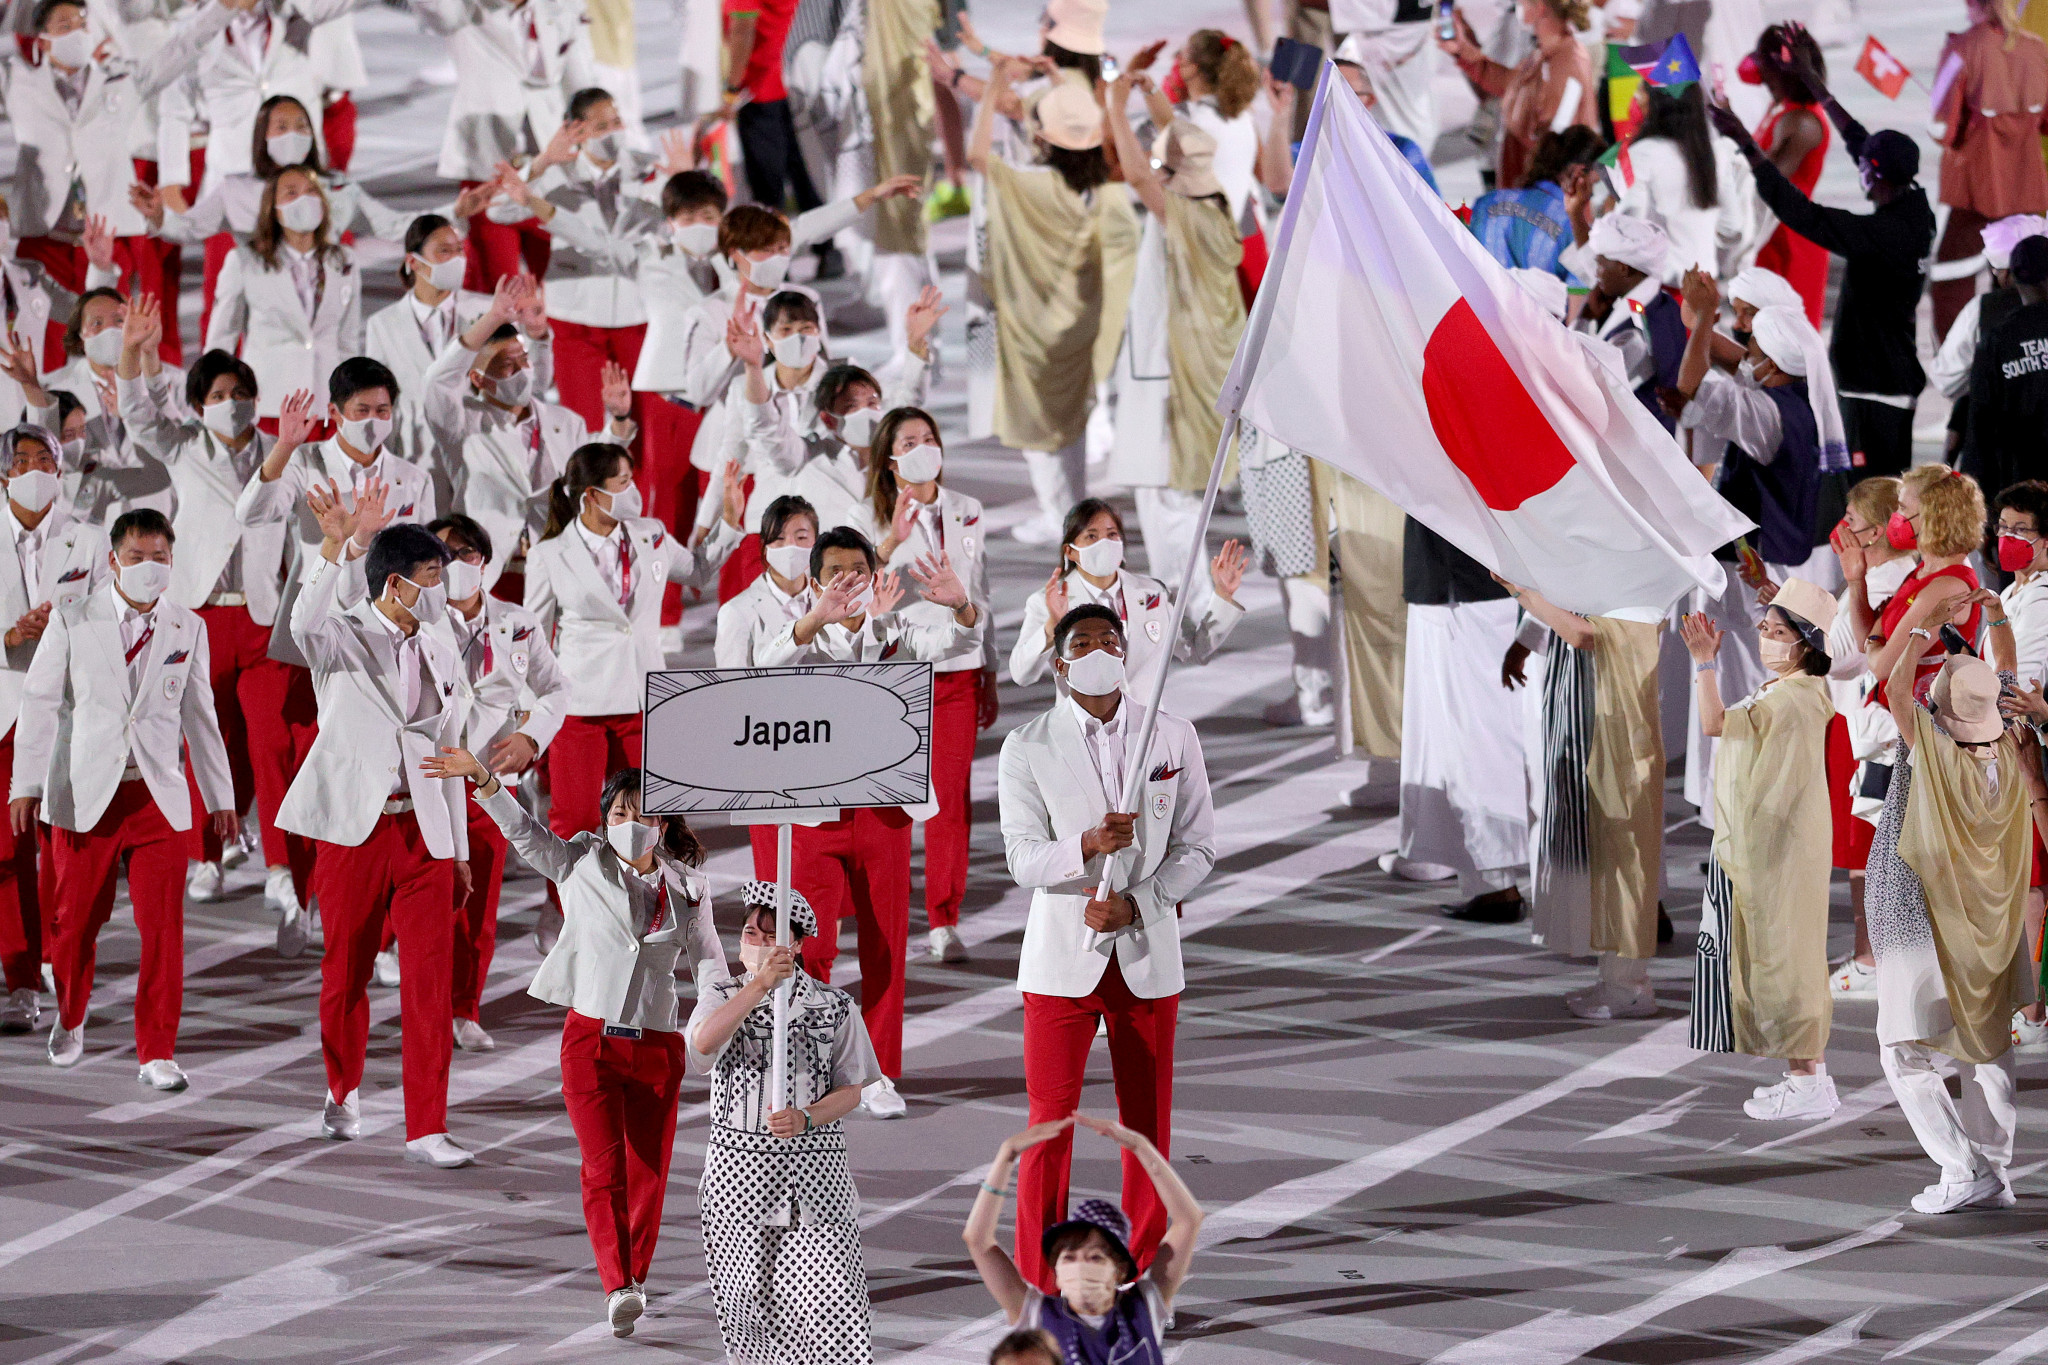 Hosts Japan were the final nation to march in the Opening Ceremony ©Getty Images